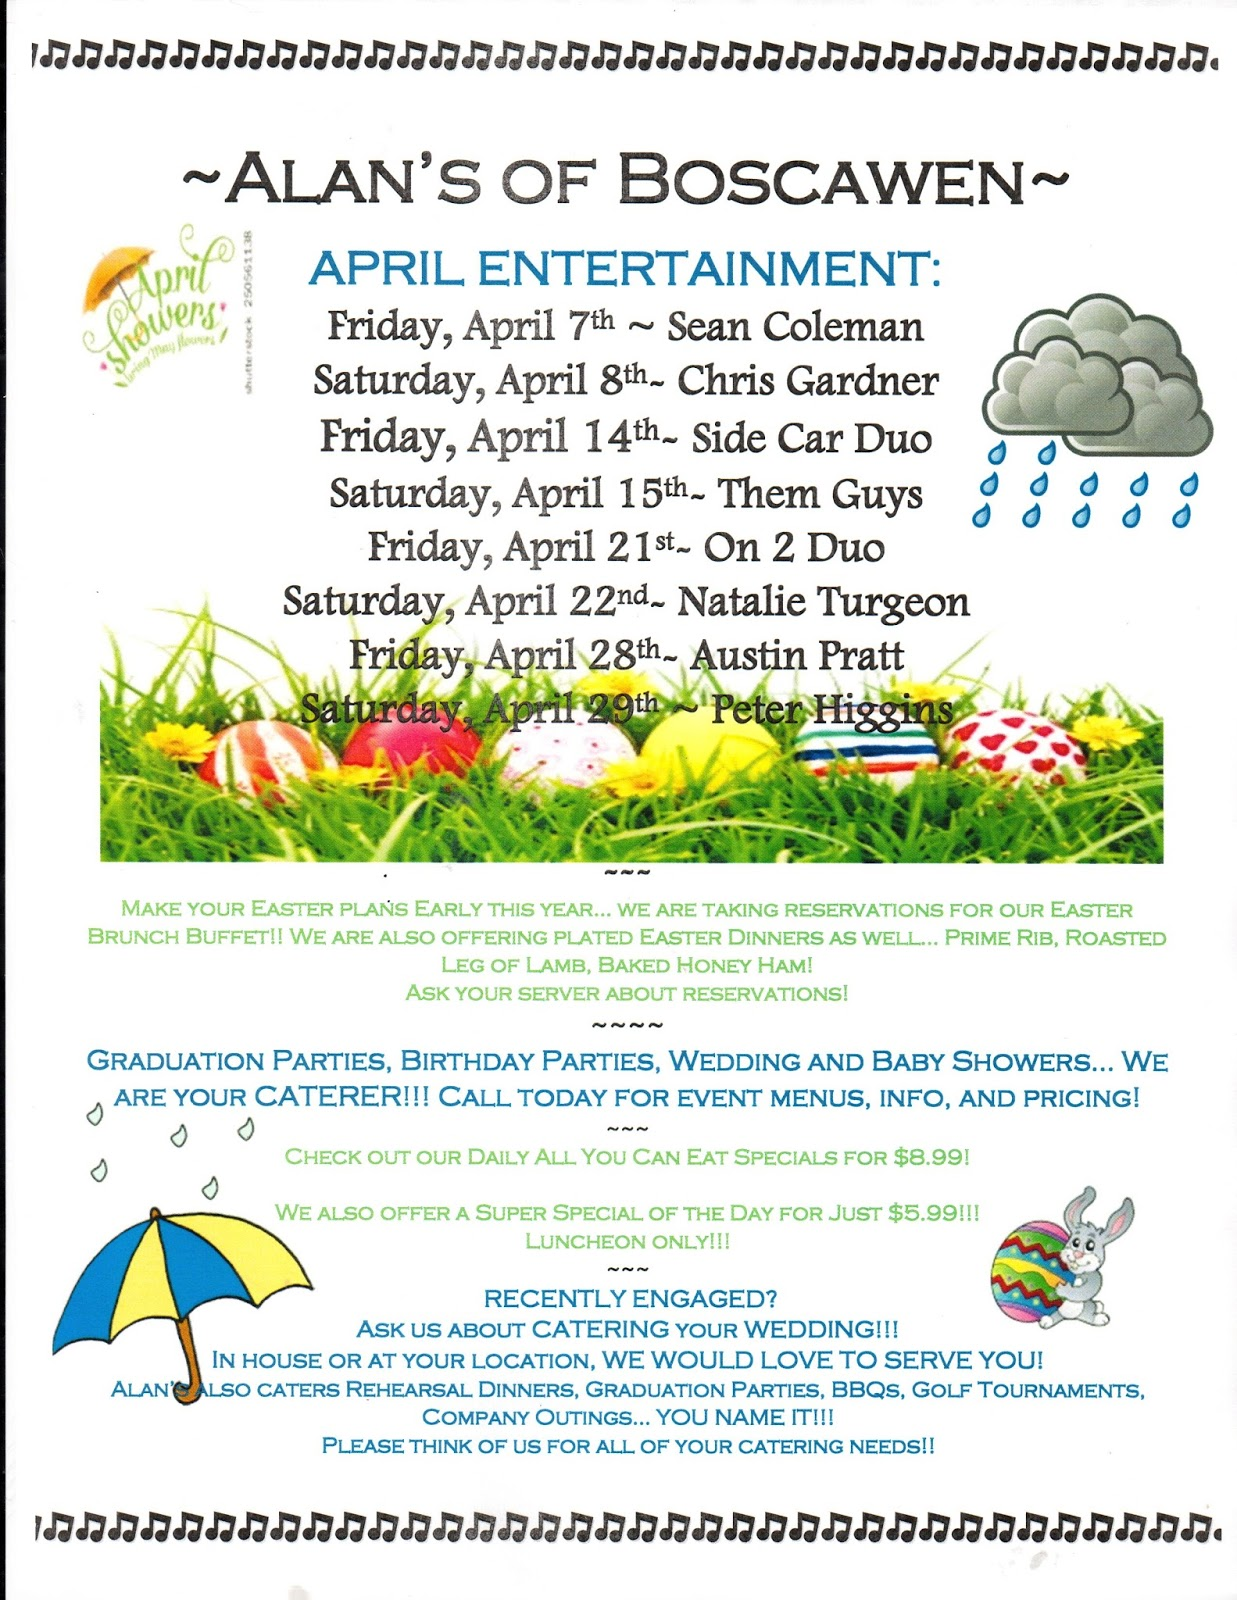 Alan's of Boscawen, NH - News, Events & Live Entertainment schedule